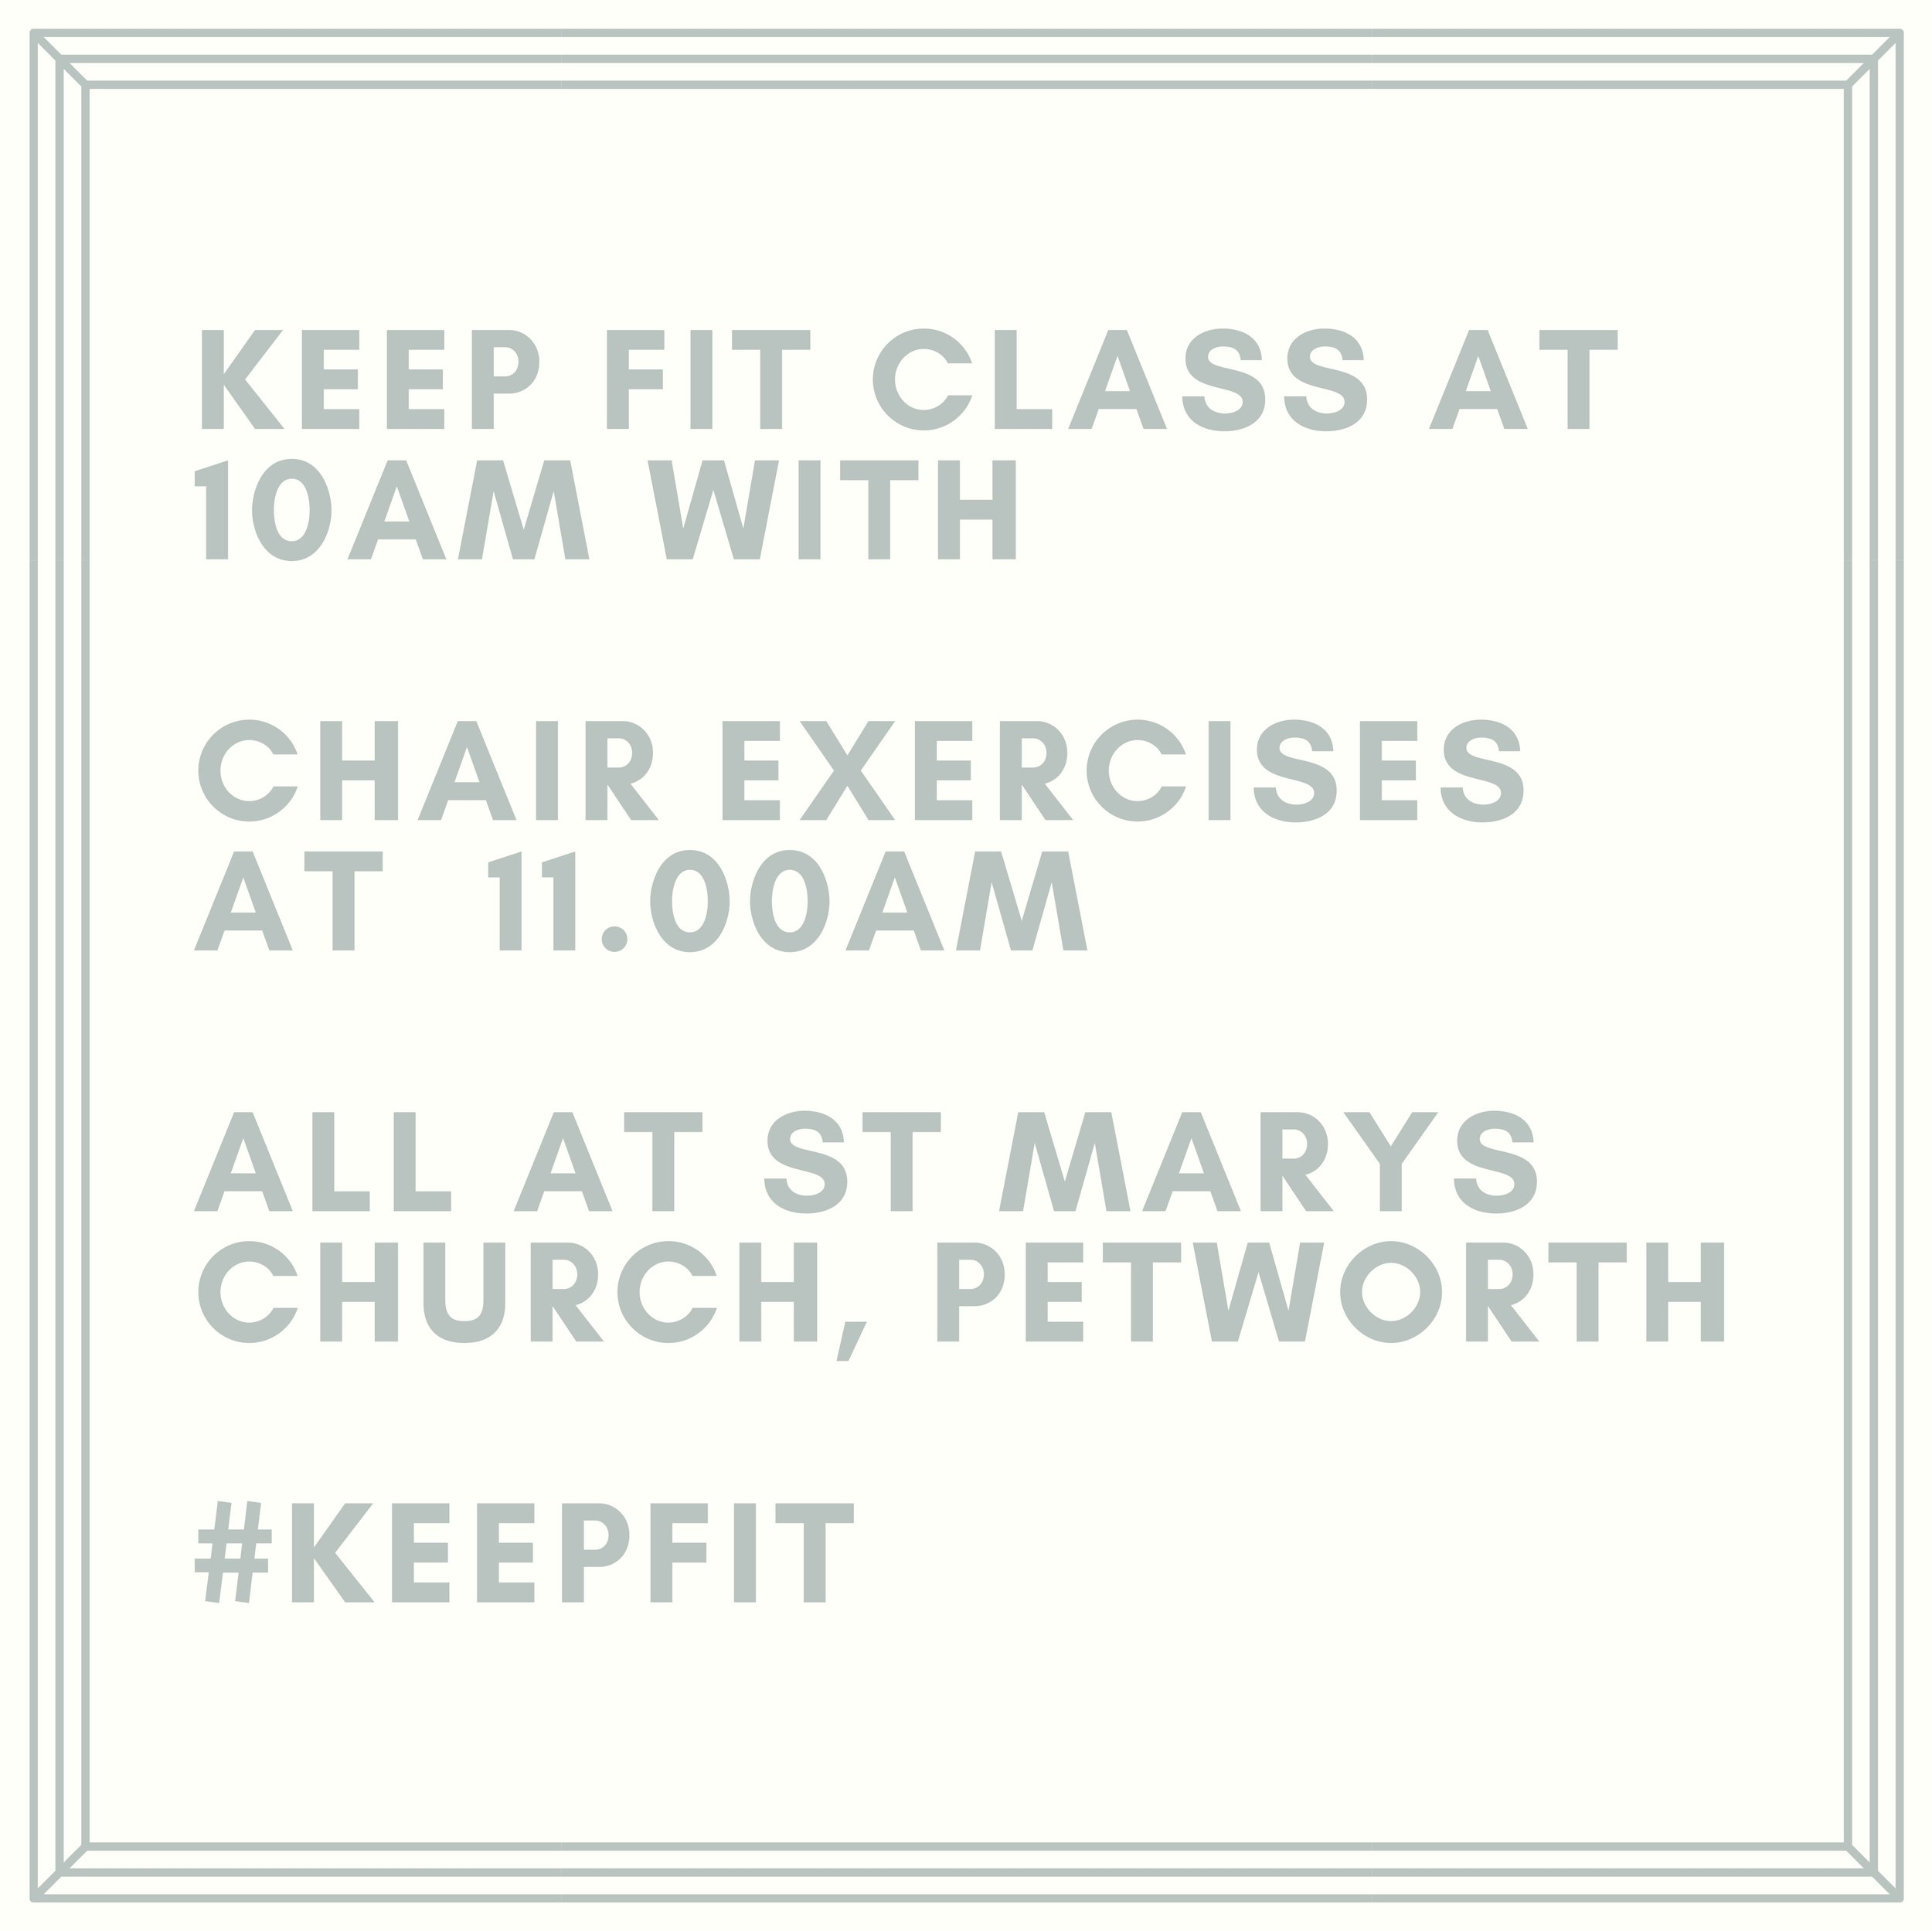 TUESDAY KEEP FIT